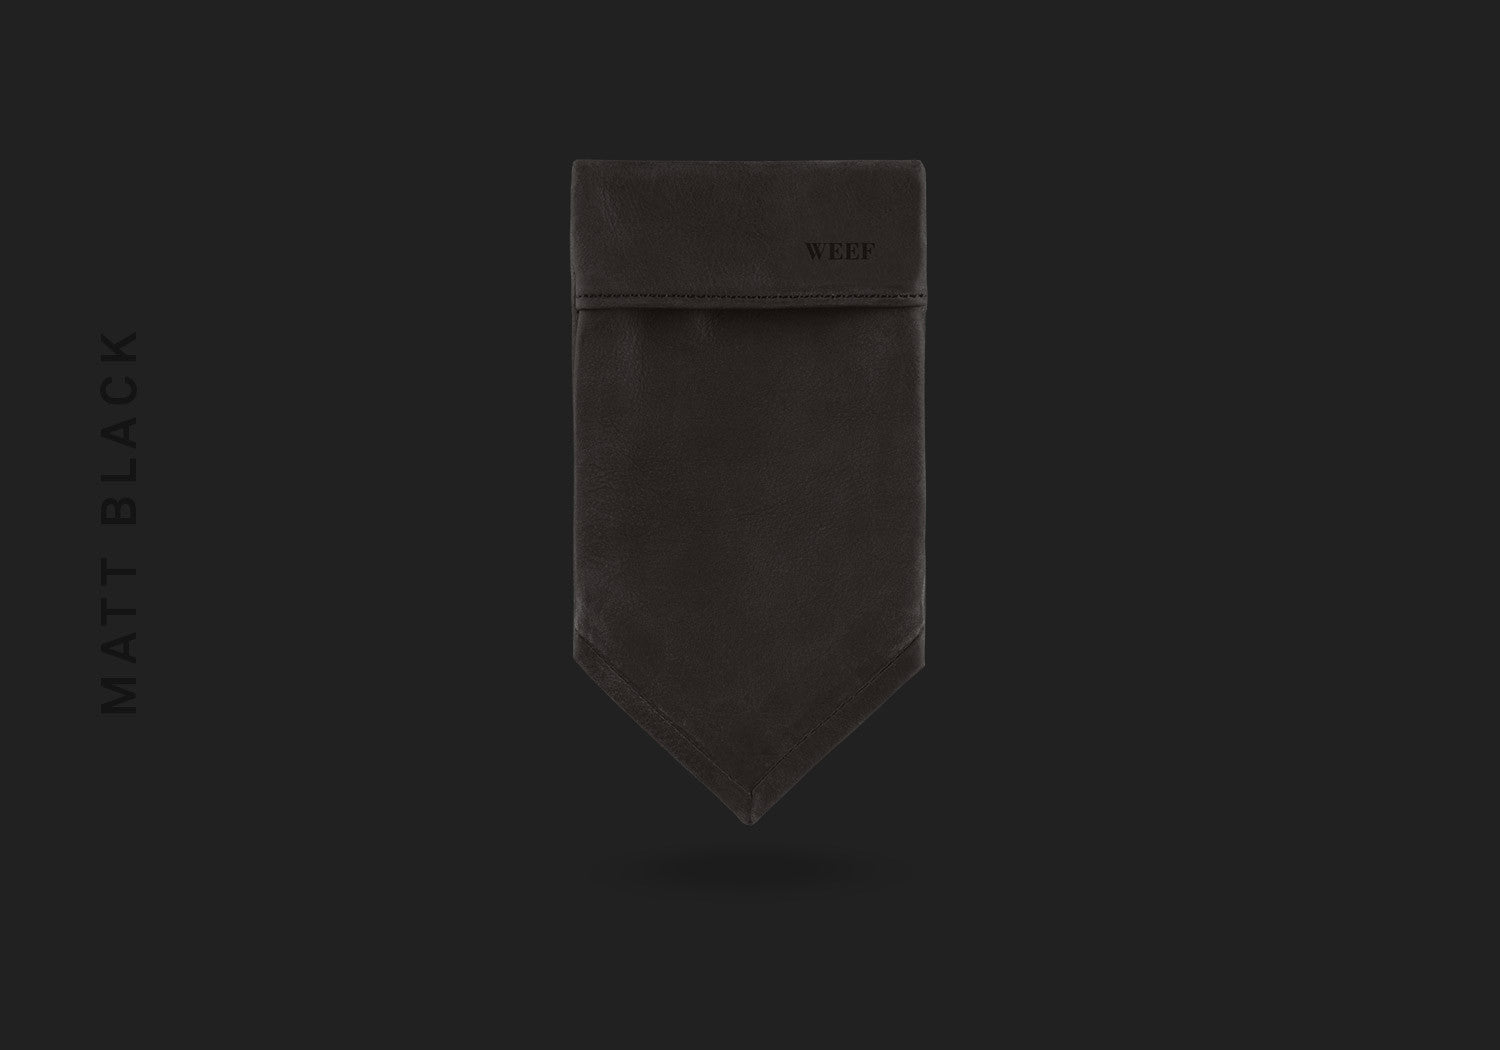 This matt black WEEF handmade leather pocket square is a great present or gift idea for dapper and stylish gentlemen for fathers day, valentines day or Christmas.